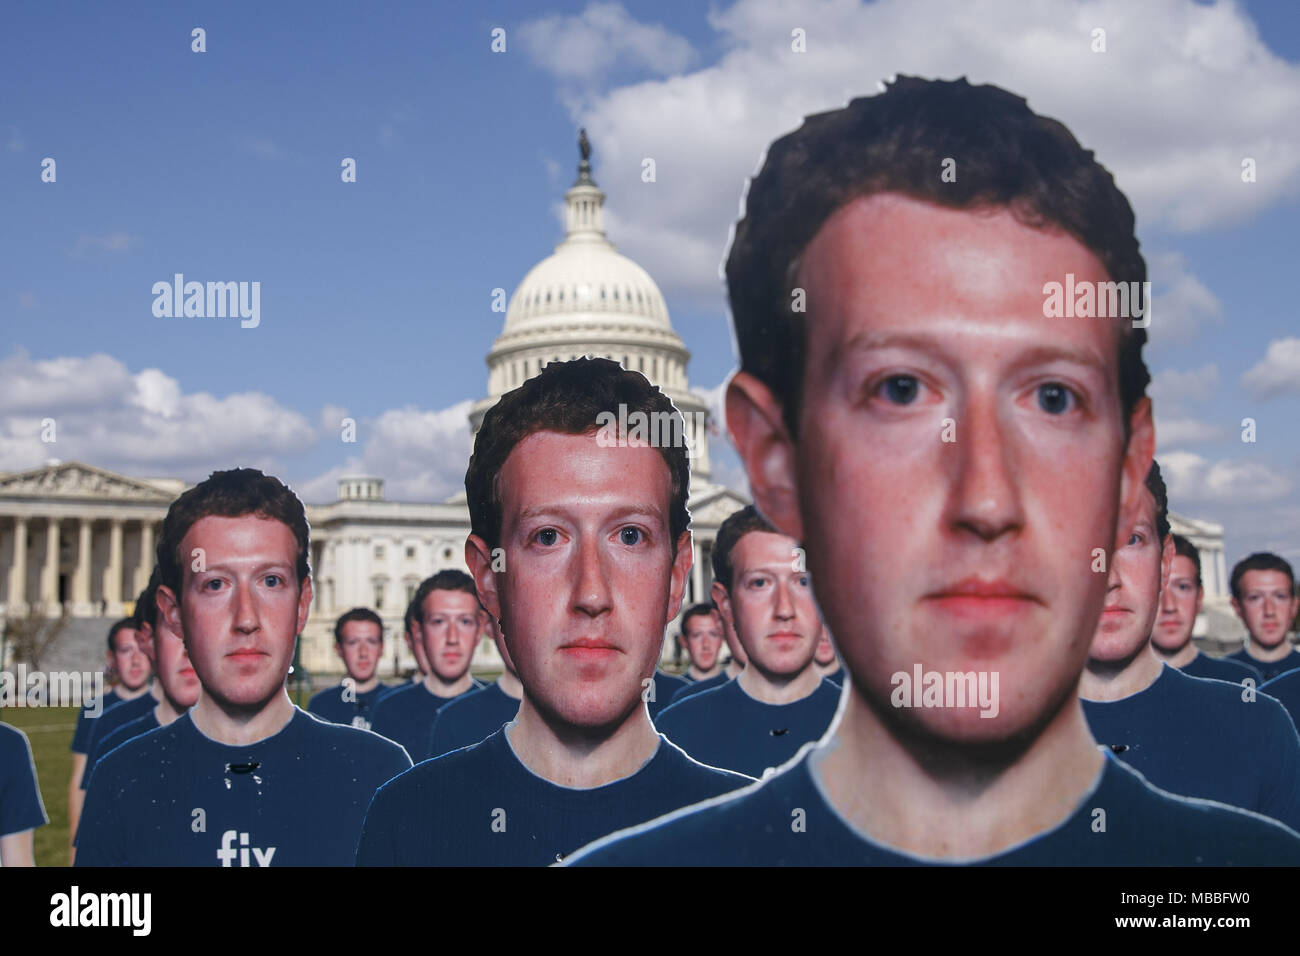 Washington, District Of Columbia, USA. April 10, 2018 - Washington, District Of Columbia, USA - 100 life size cutouts of Facebook CEO Mark Zuckerberg outside the United States Capitol on the day that Zukerberg will testify before Congress on Capitol Hill in Washington, DC on April 10, 2018. Credit: Alex Edelman/ZUMA Wire/Alamy Live News Credit: ZUMA Press, Inc./Alamy Live News - Stock Image